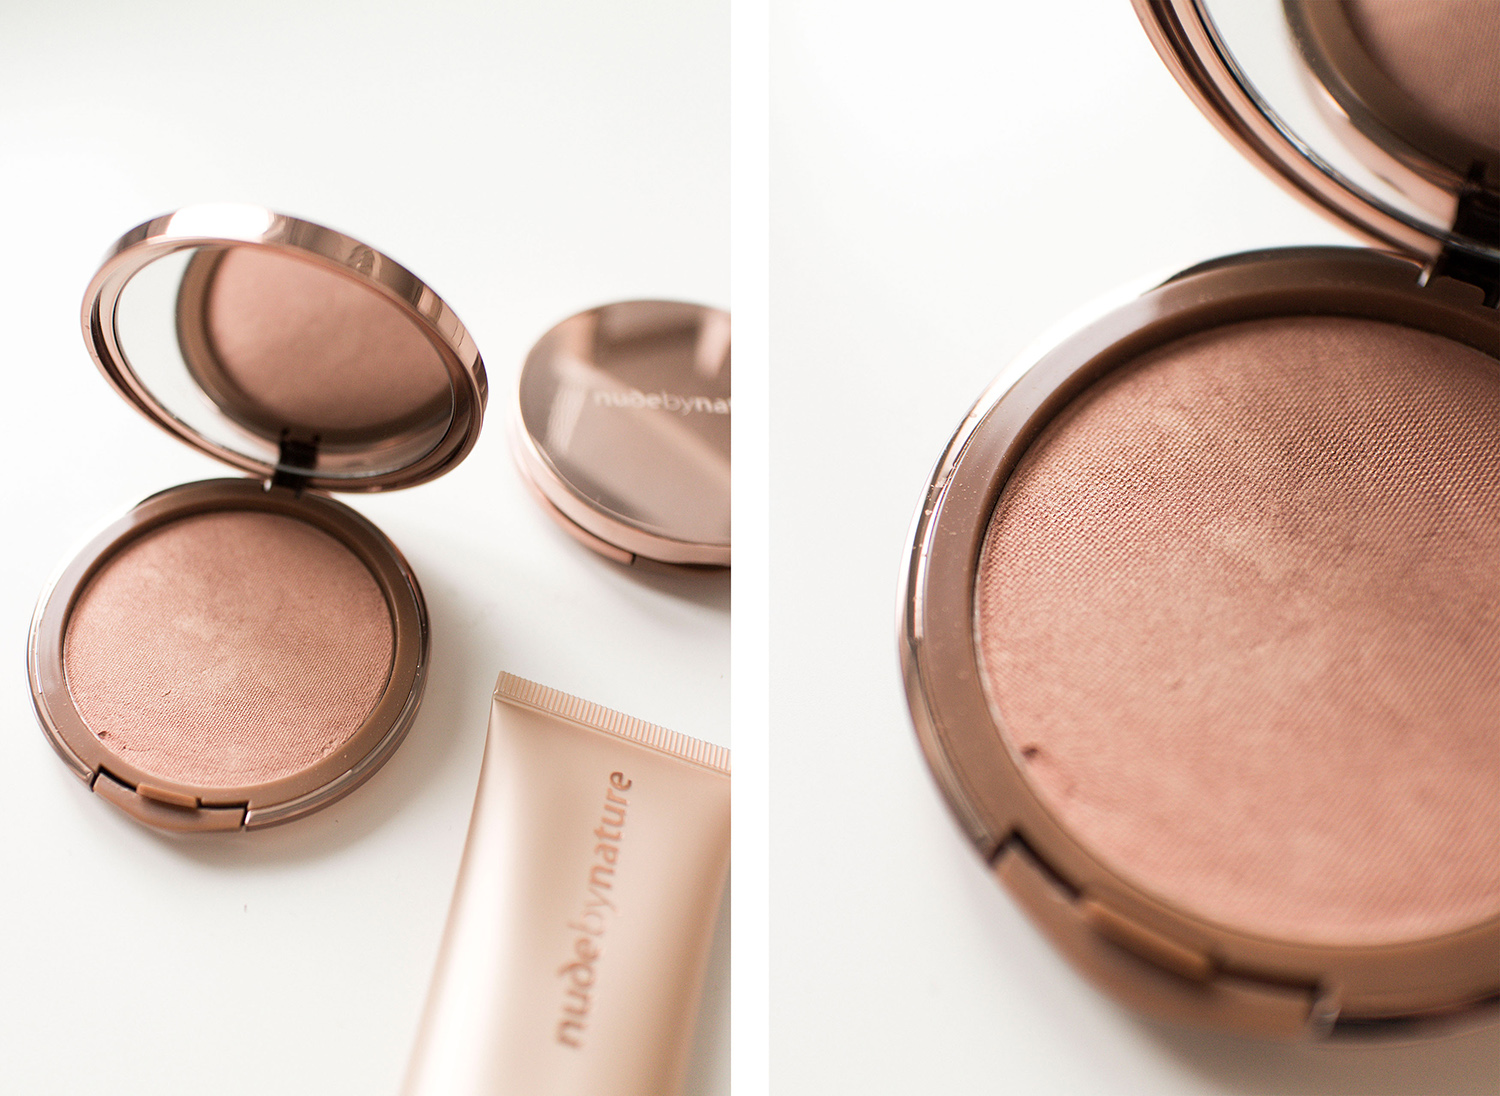 Nude by Nature Christmas Collection Set Review: Sheer Light Pressed Illuminator